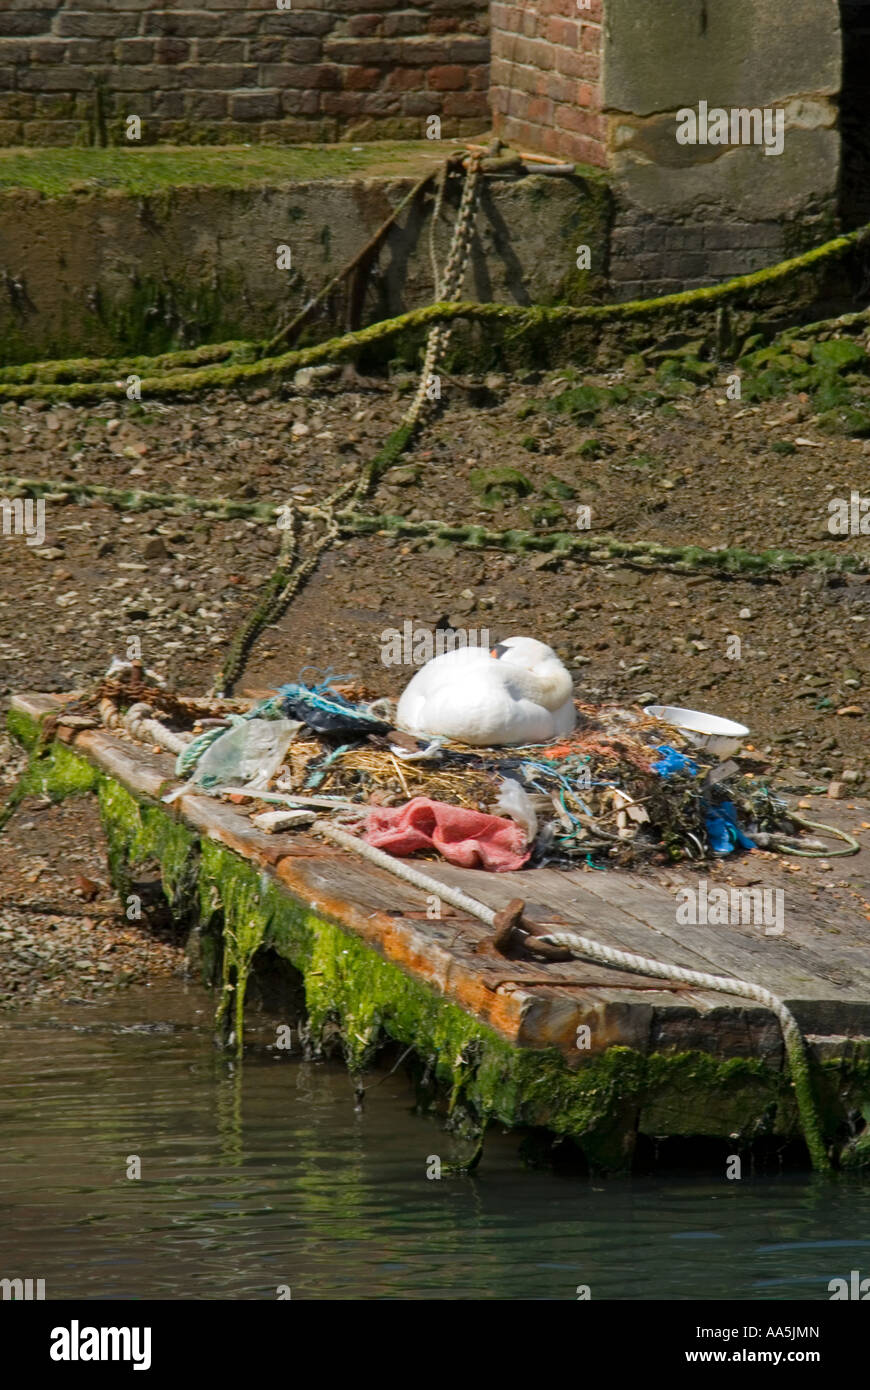 Vertical view of a female Mute swan asleep on it's nest made of recycled human rubbish discarded on the riverbank - Stock Image